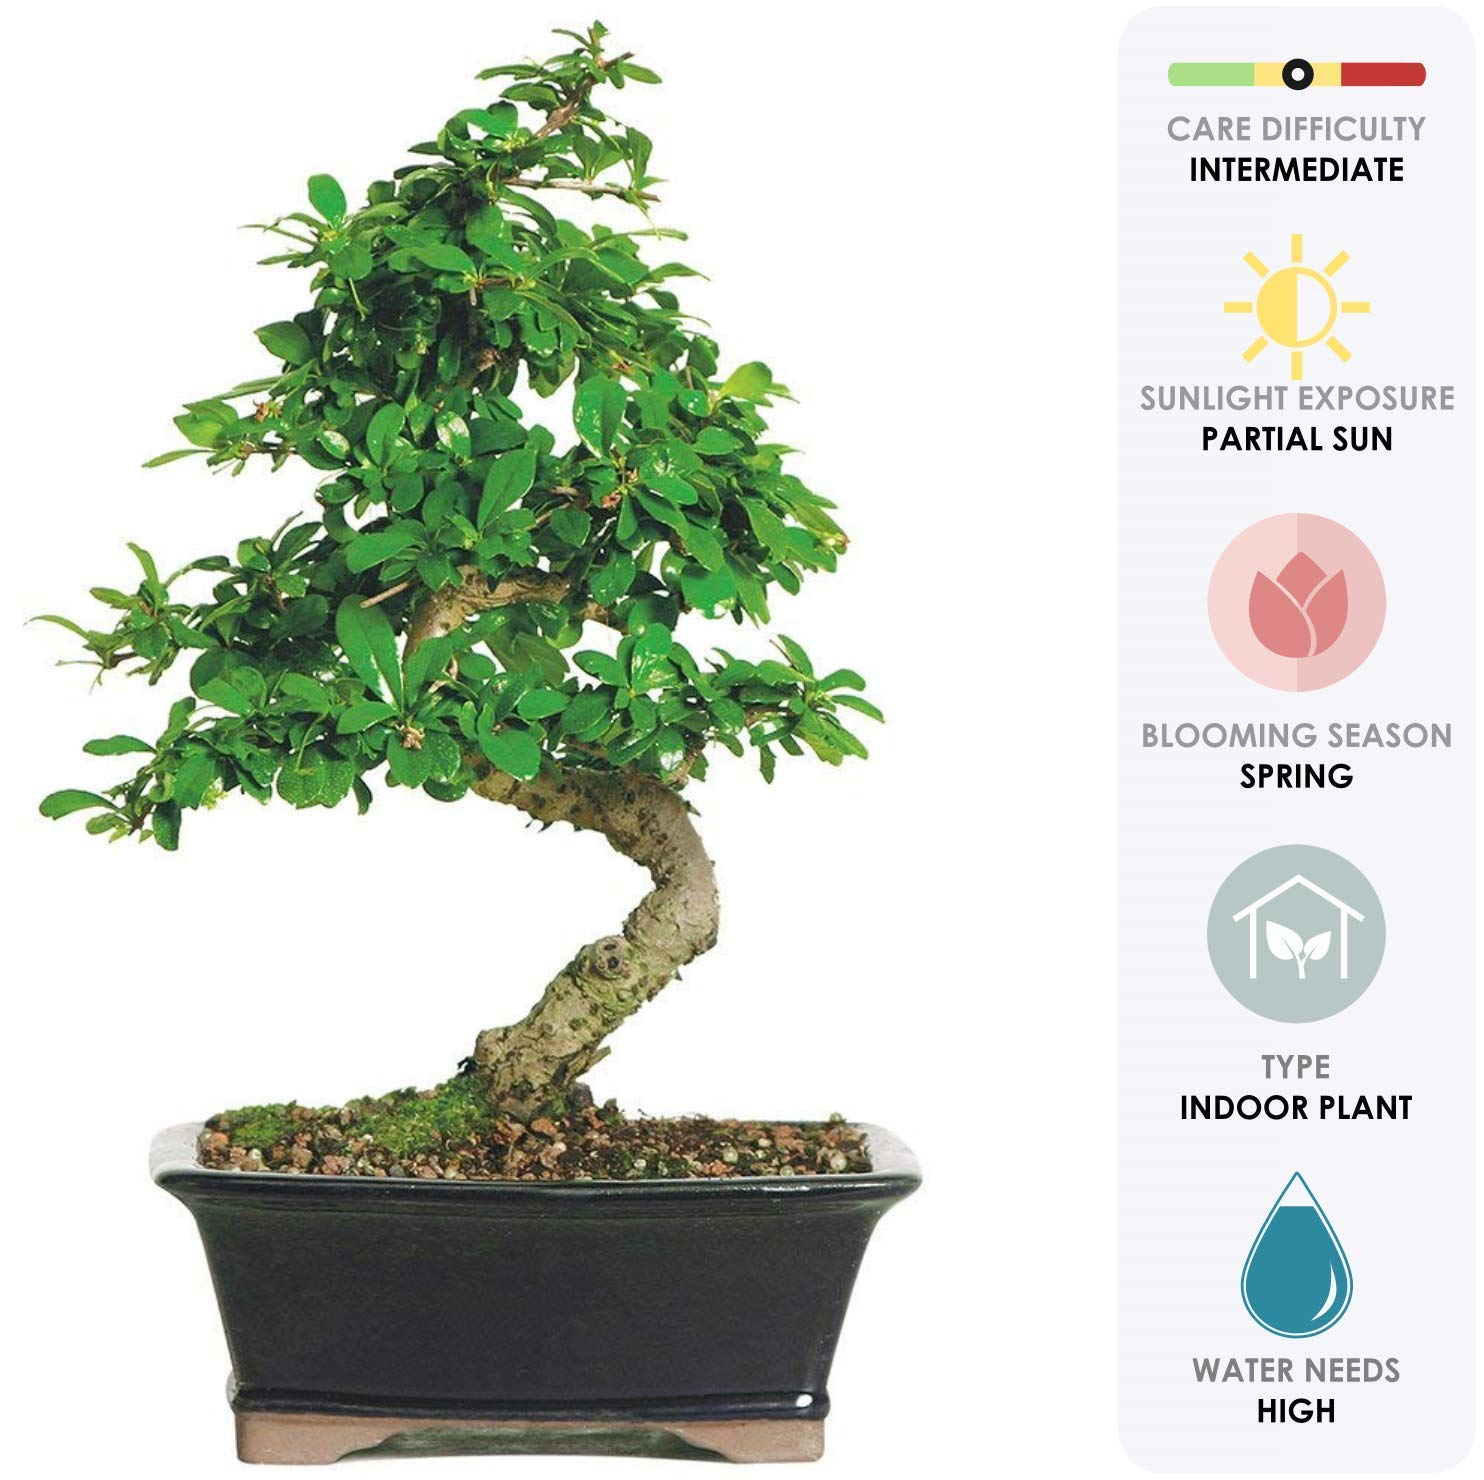 Brussel's Bonsai Live Fukien Tea Indoor Bonsai Tree - 6 Years Old; 6'' to 10'' Tall with with Decorative Container, by Brussel's Bonsai